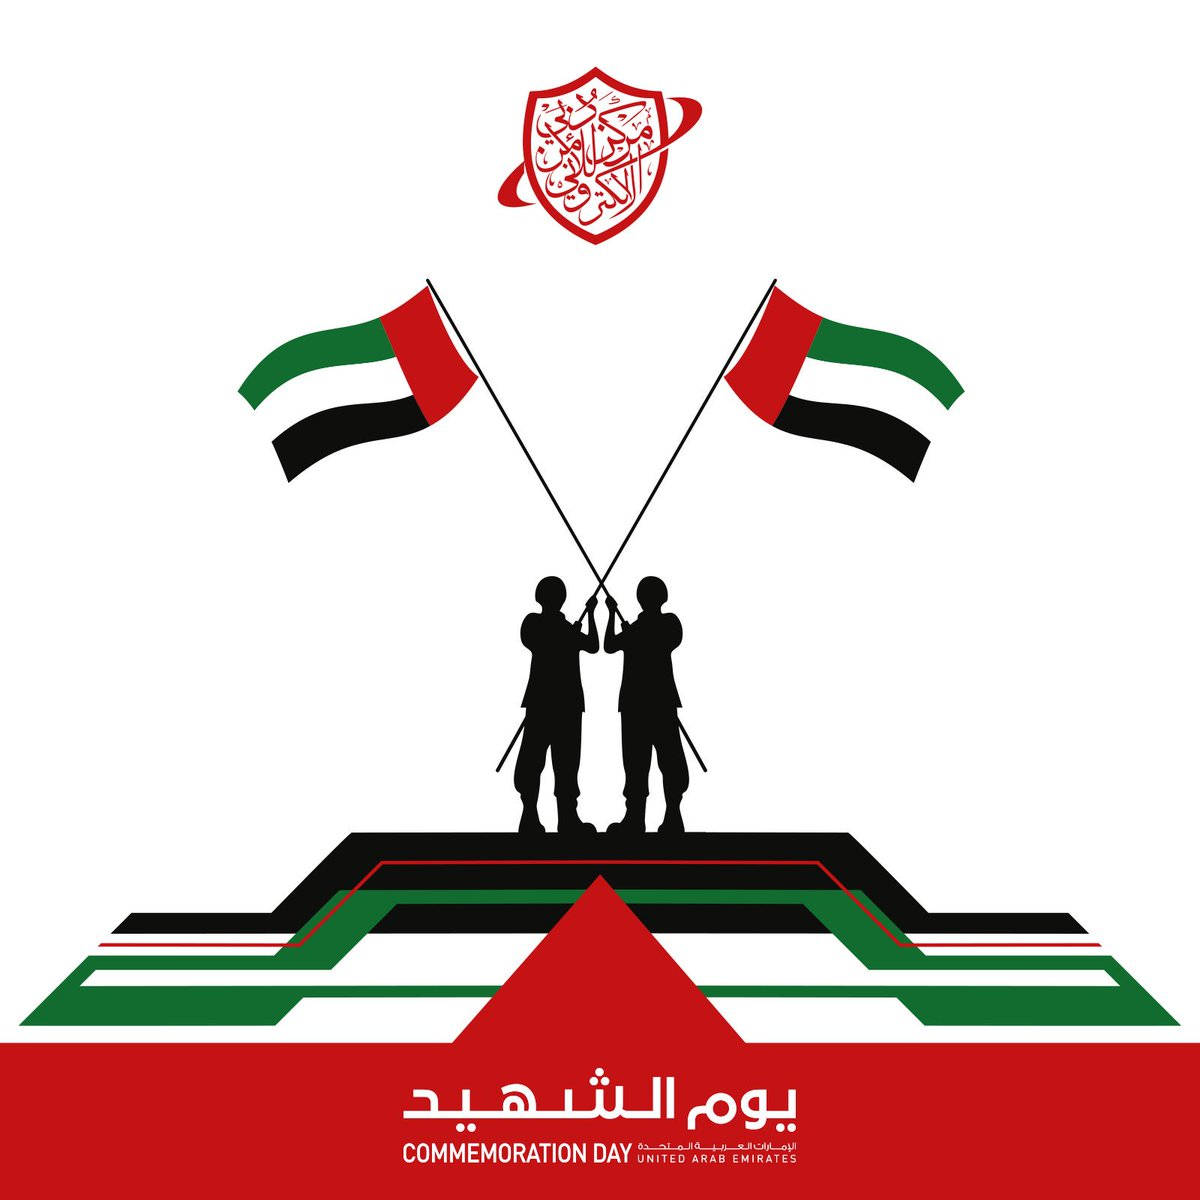 Today we honor the brave martyr's whose sacrifice and patriotism lives on to this day and has helped this country become the great nation it is today. It is thanks to the #UAEMartyrs that we are able to see a better today, and build a greater tomorrow. #The_UAE_Remembers